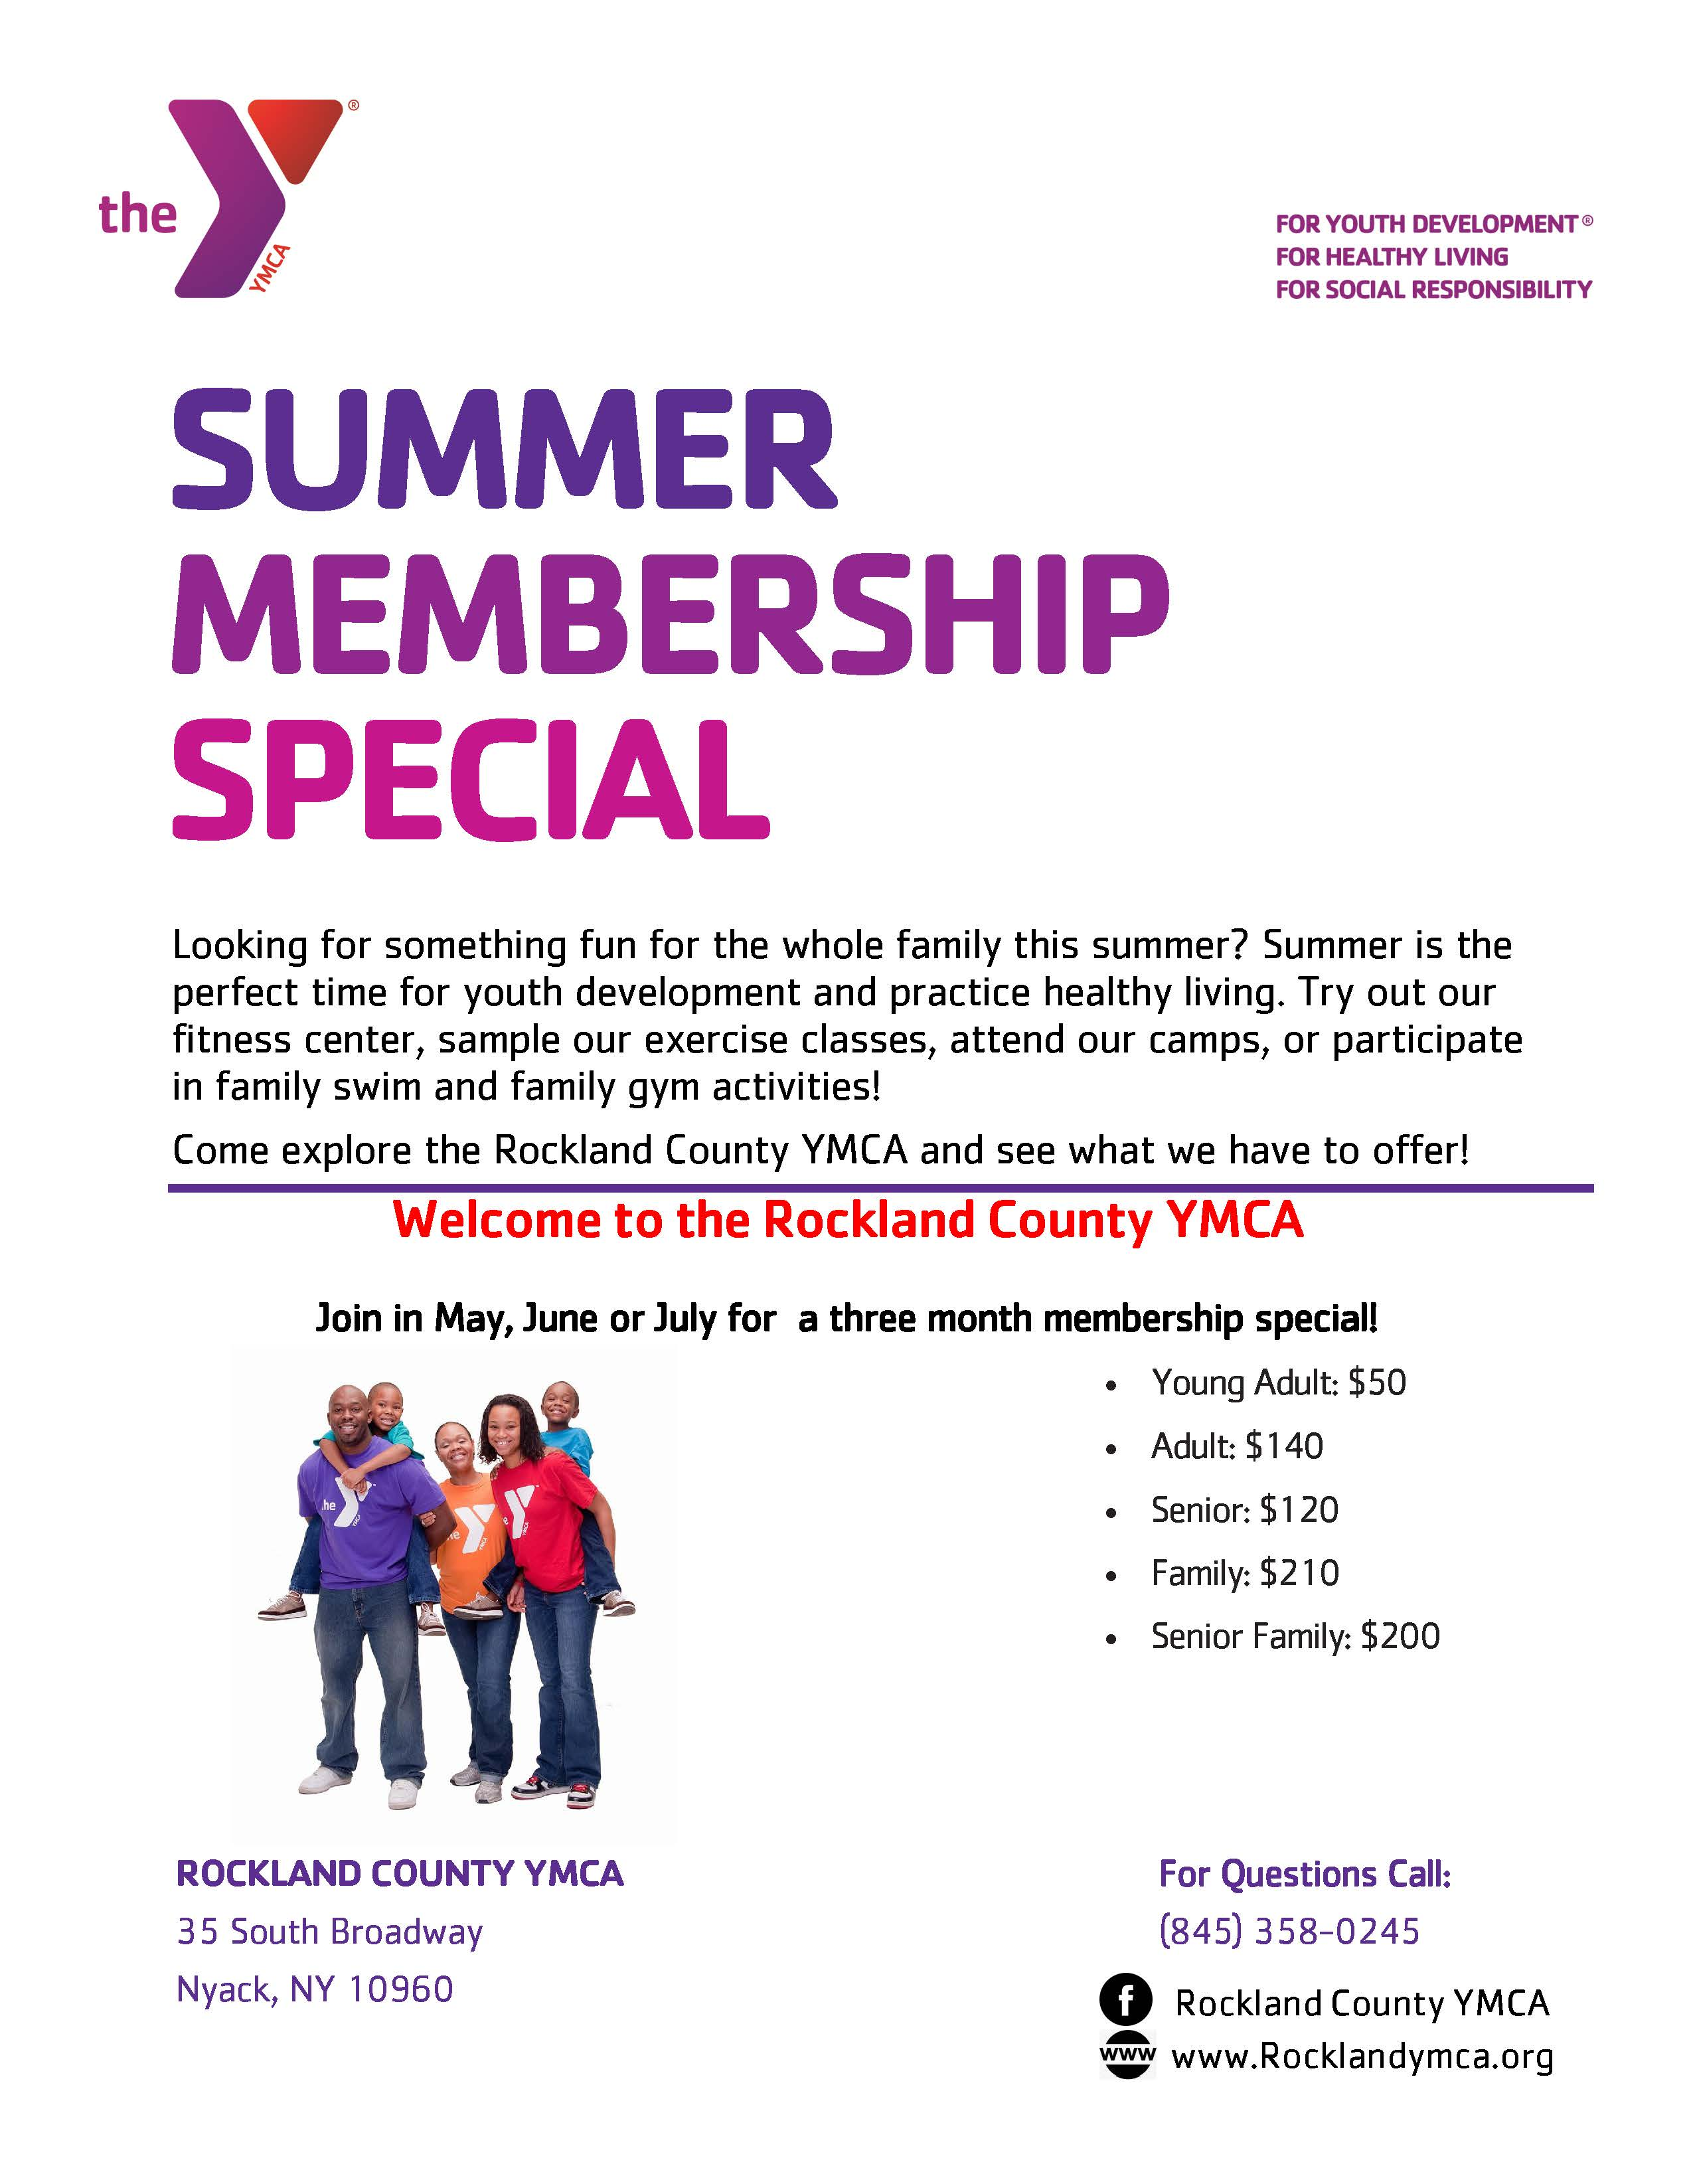 NEW Special Summer 3 month membership - Rockland County YMCA